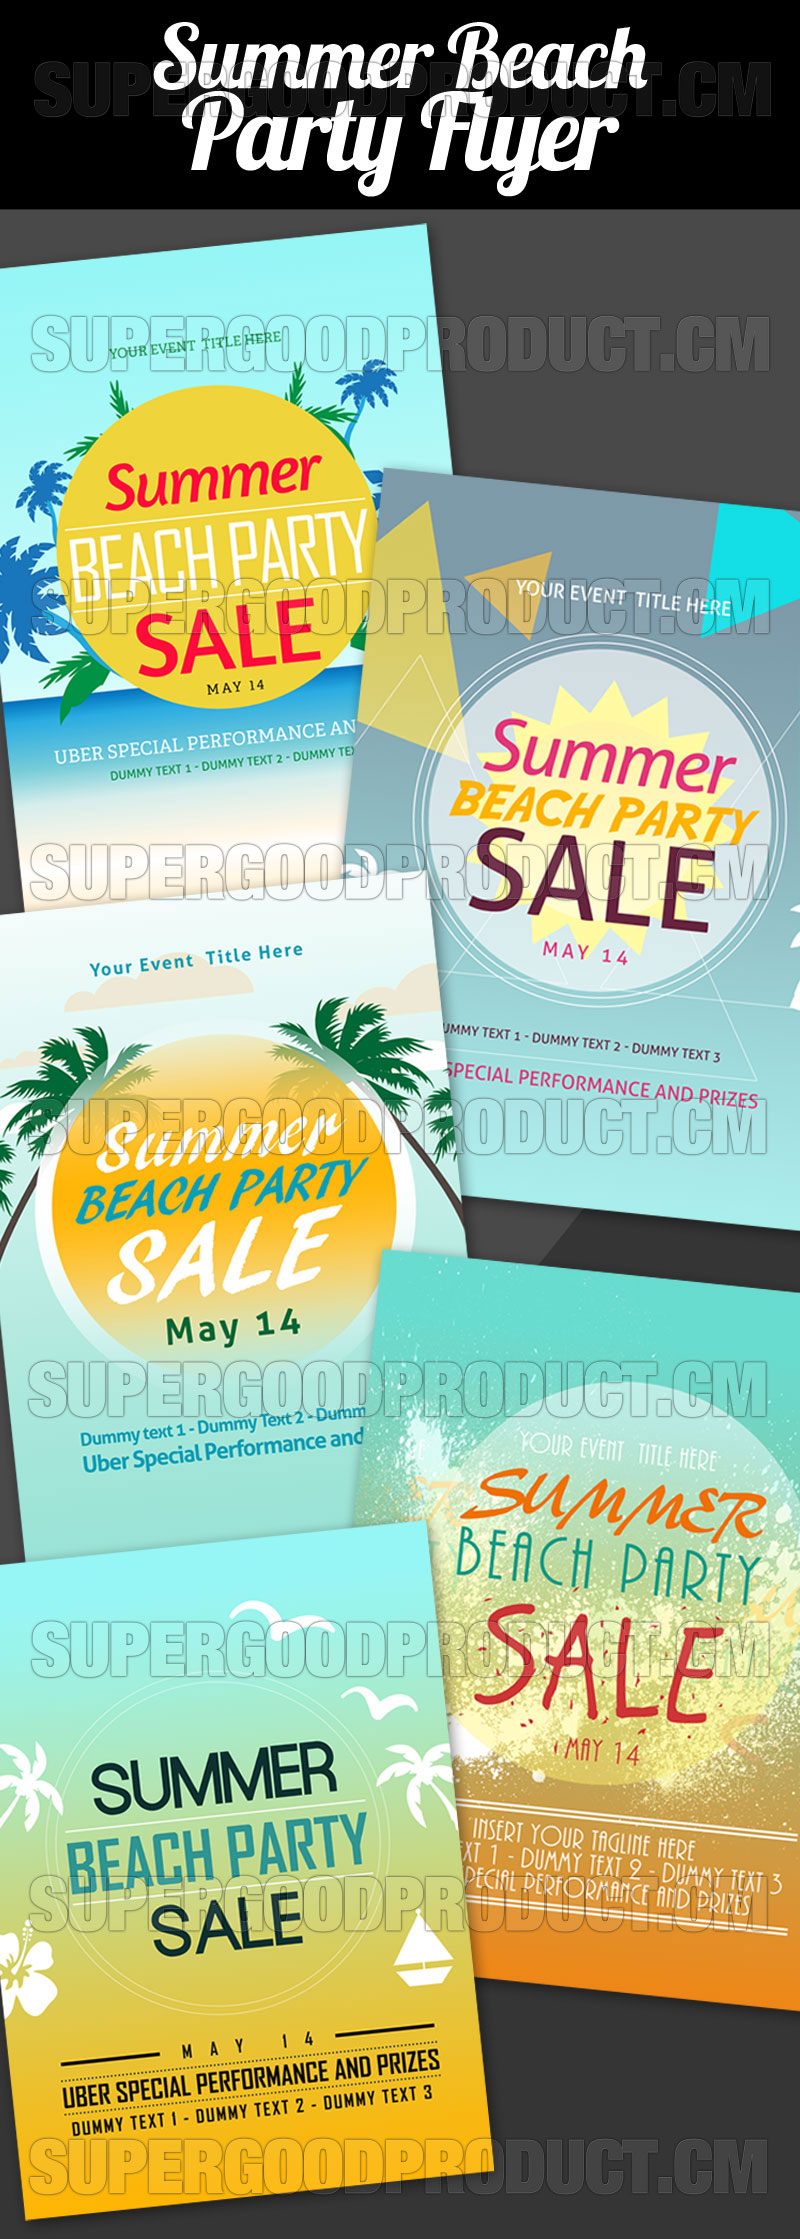 Summer-Beach-Party-Flyer